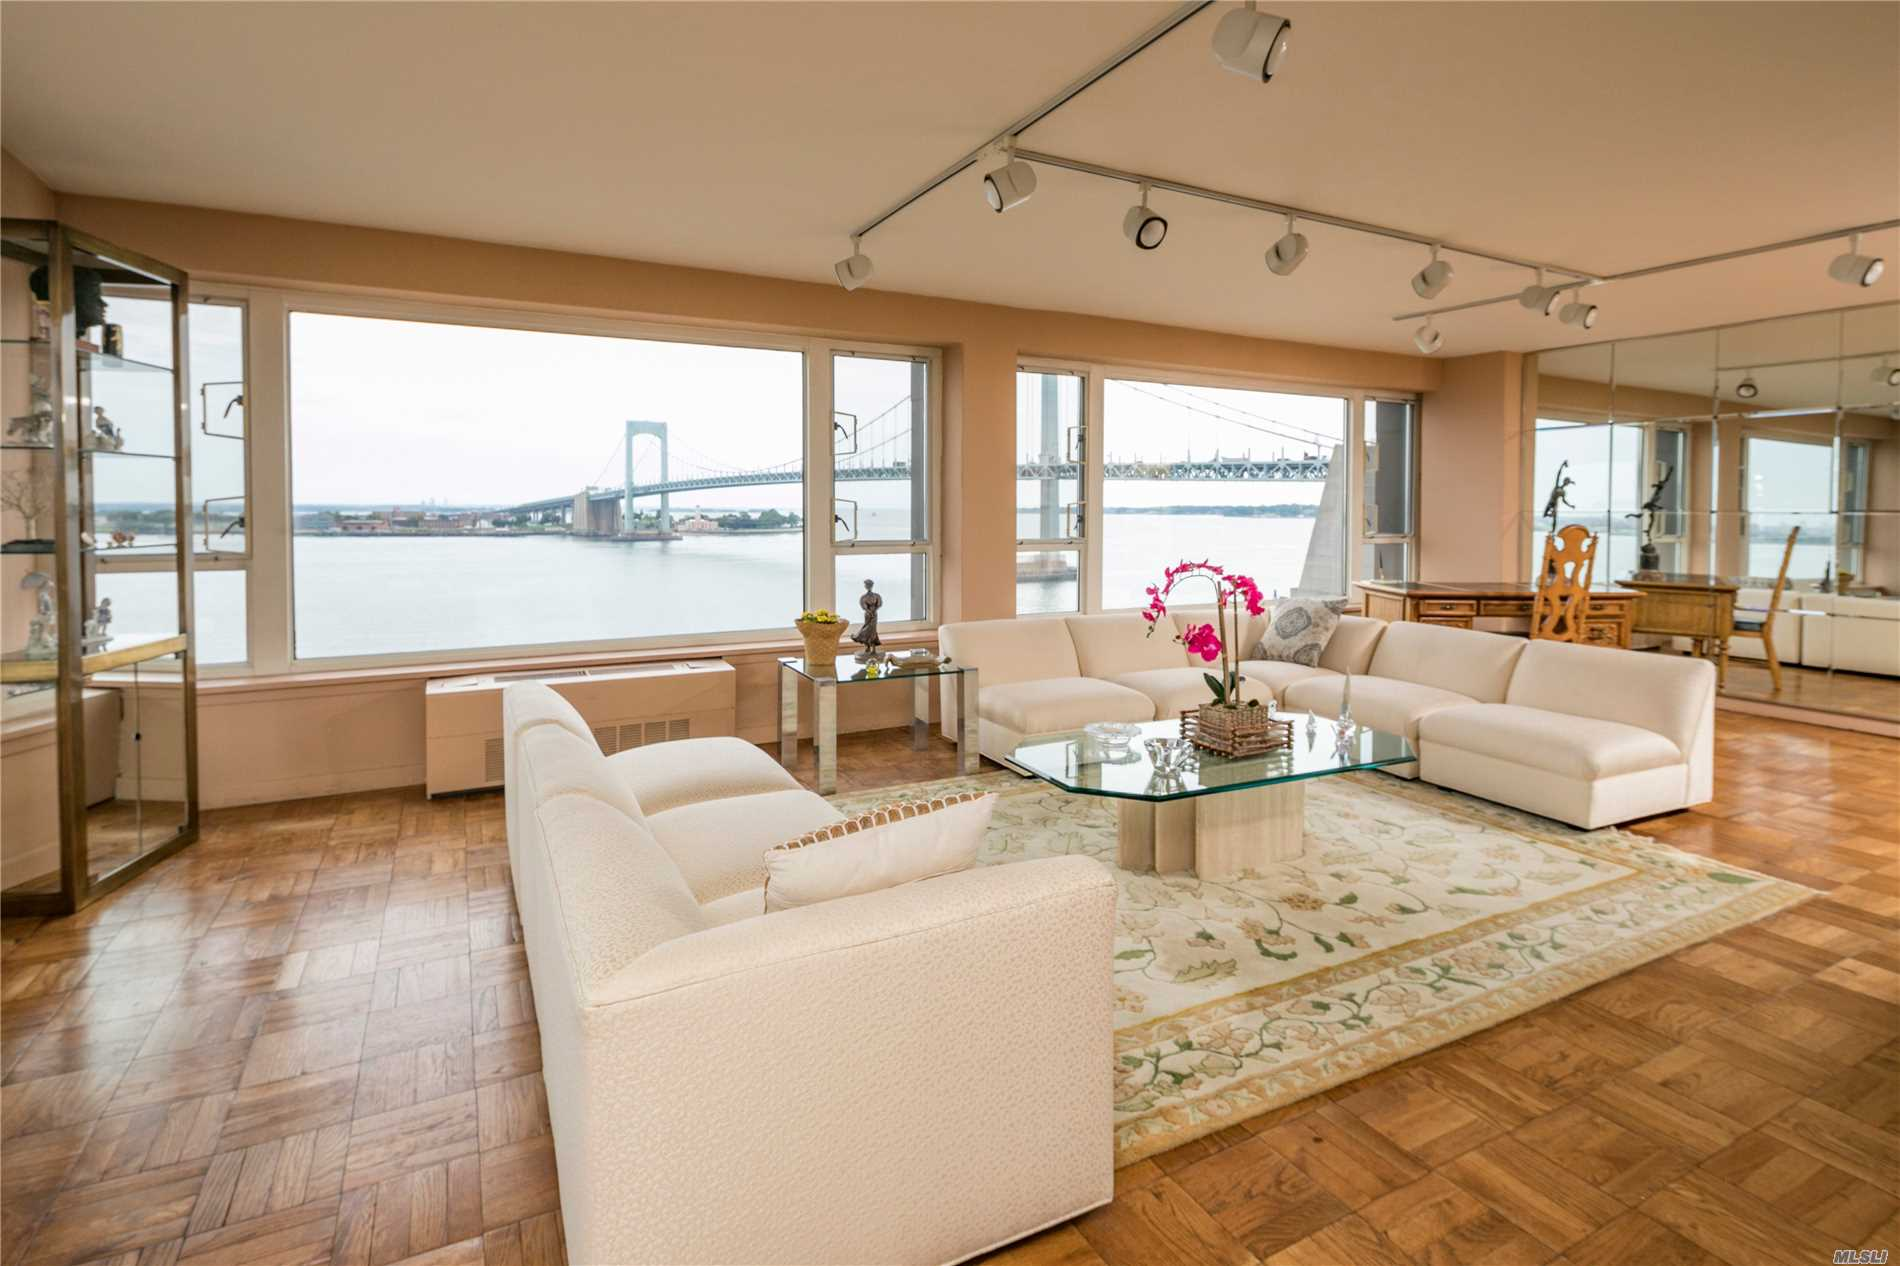 RARELY AVAILABLE-SWEEPING PANORAMIC WATER & BRIDGE VIEWS;3BR 2BTH IN LUXURY GATED BLDG-24/7 DOORMEN, STAFF, SECURITY-VALET INDOOR PARKING-RENOVATED KITCHEN-GYM-HEATED POOL- CONVENIENT EXPRESS BUS TO MANHATTAN-WASHER/DRYER ON EACH FLOOR-COMMUNITY ROOM-SPECTRUM IN BLDG